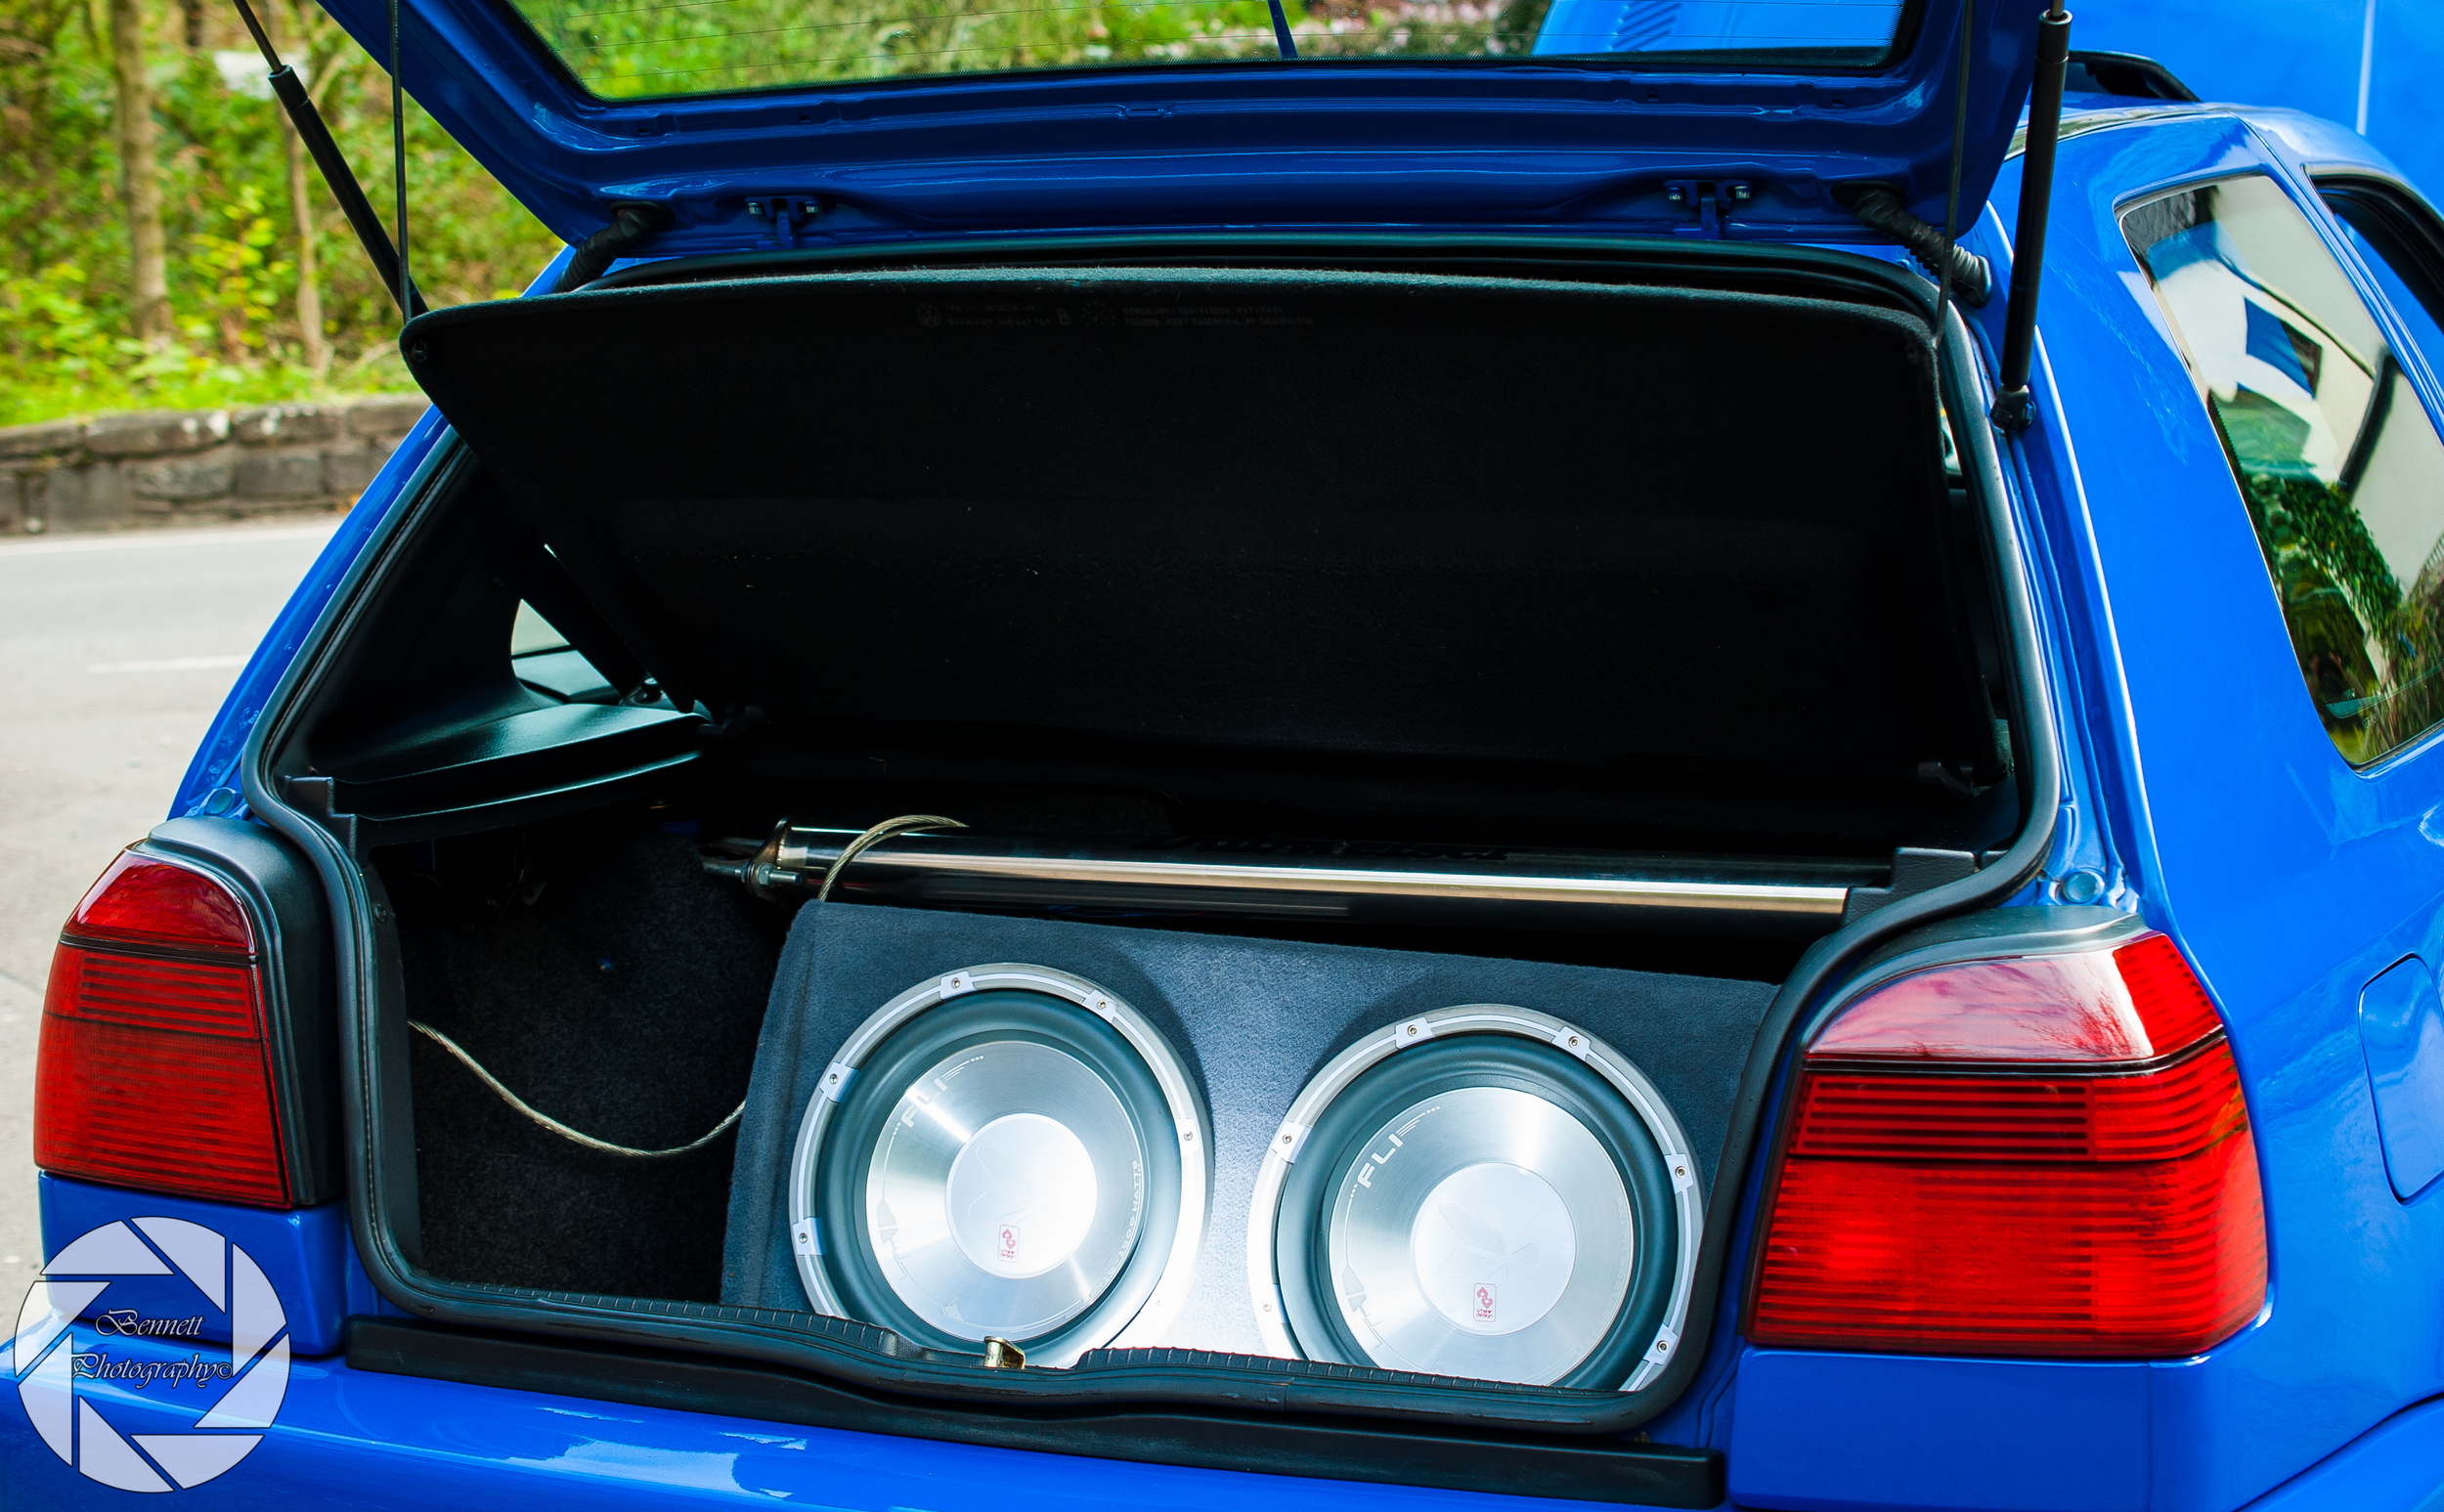 Simple subwoofer install, and tinted taillights fall right into the cars simplistic smooth theme